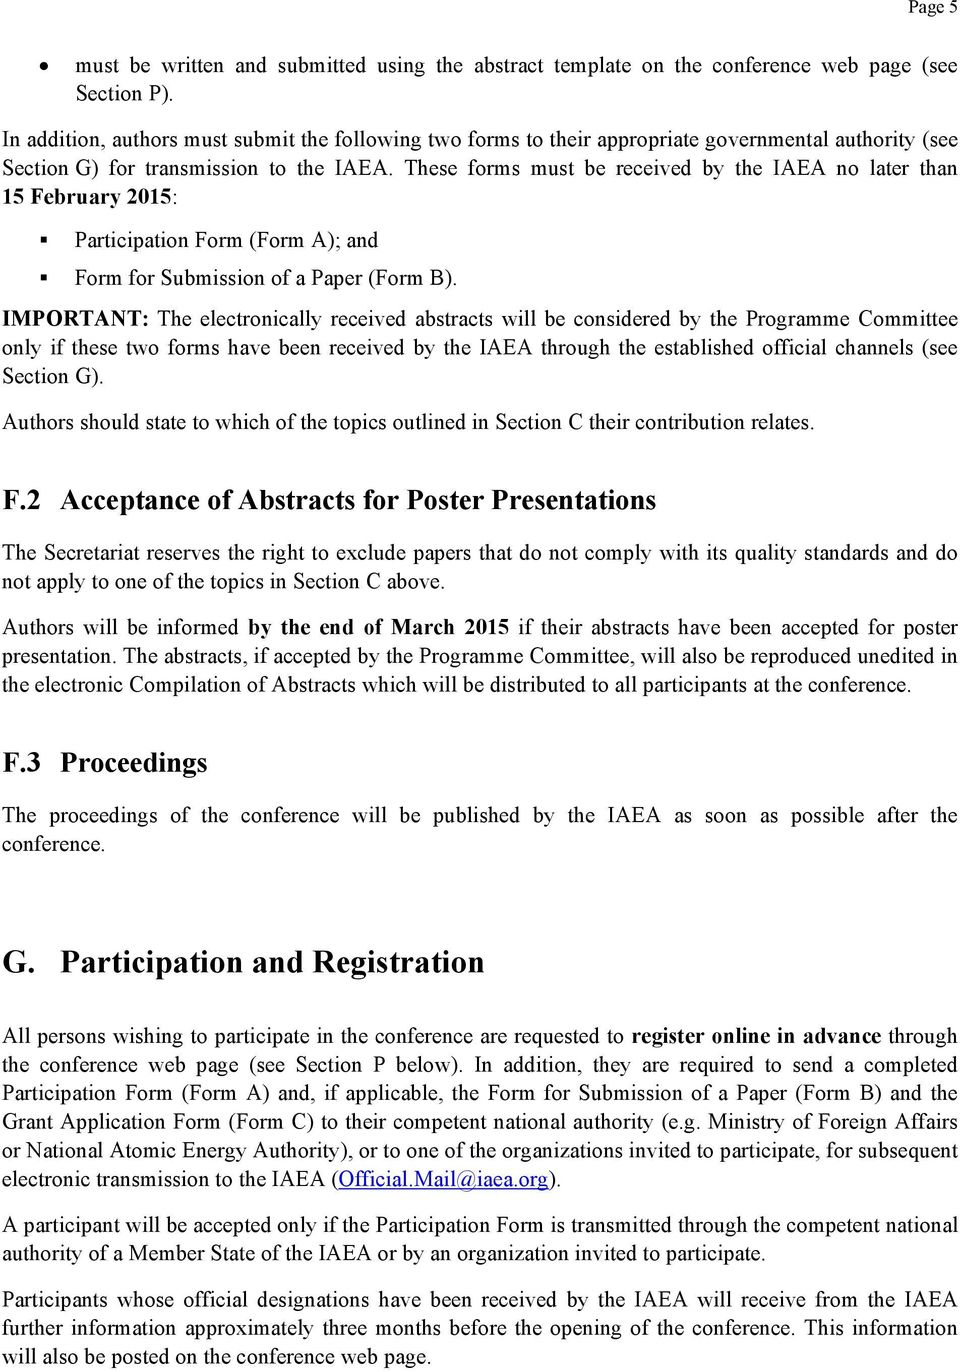 These forms must be received by the IAEA no later than 15 February 2015: Participation Form (Form A); and Form for Submission of a Paper (Form B).